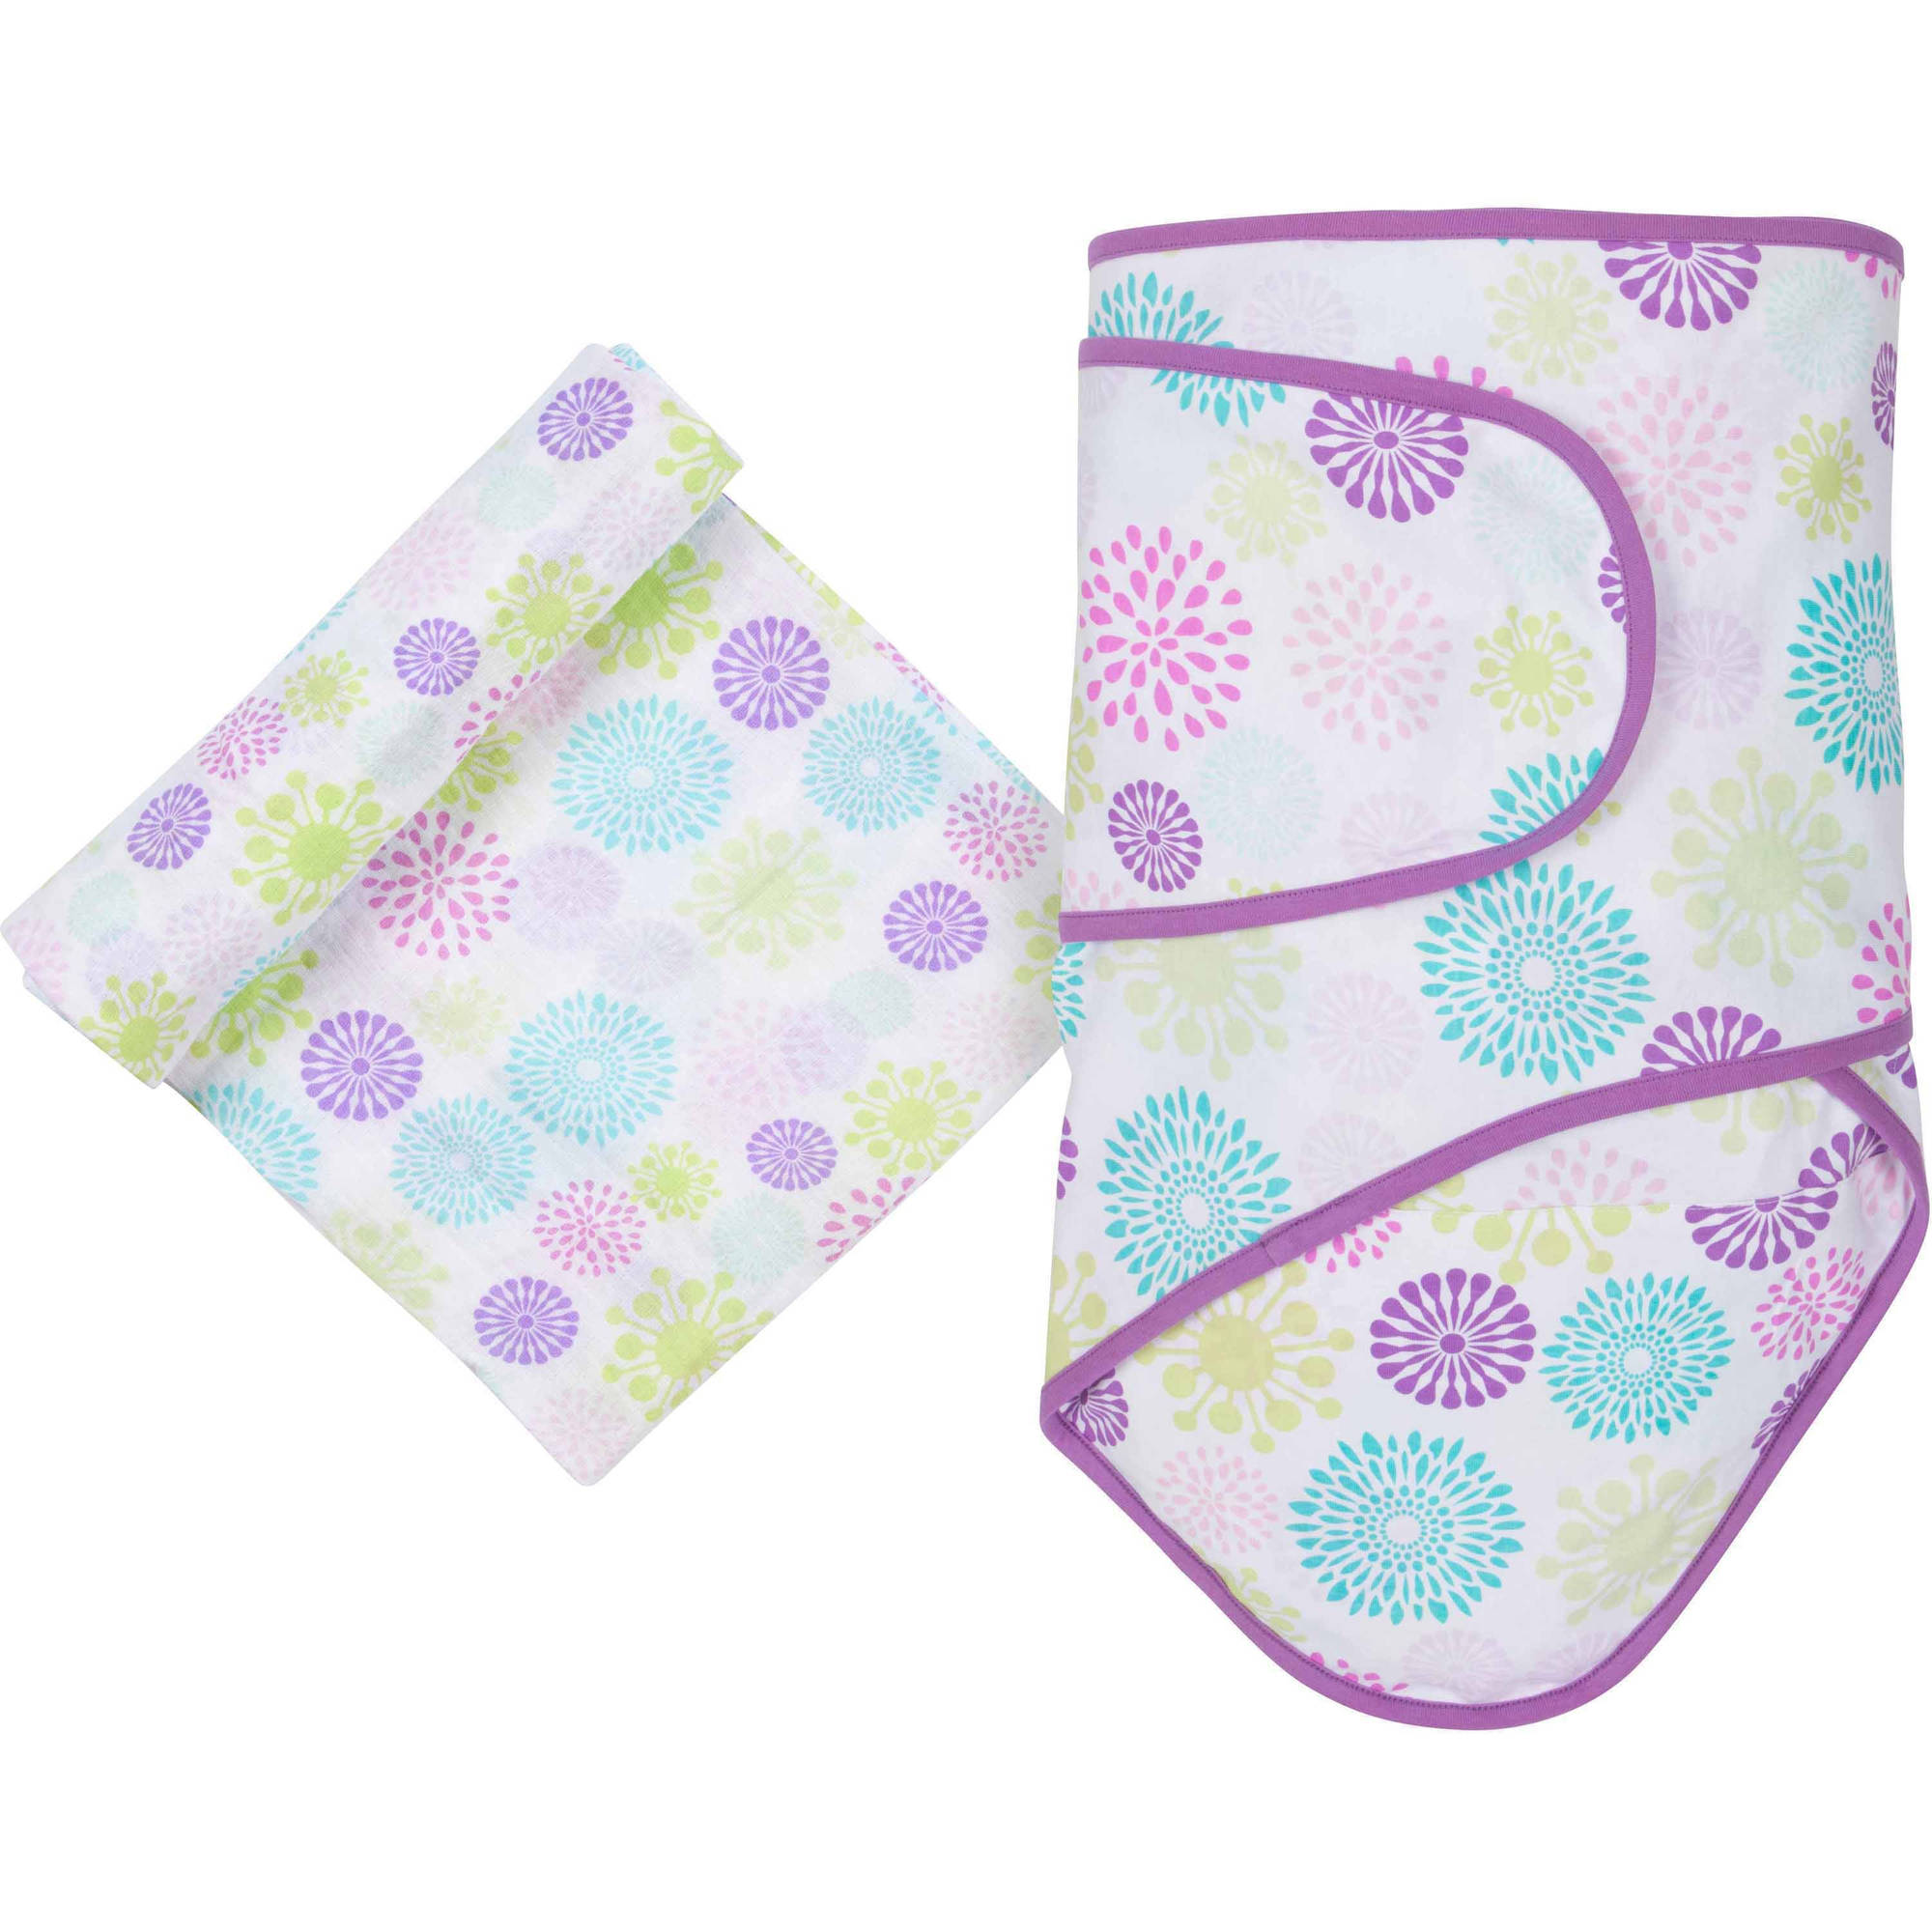 Miracle Blanket and MiracleWare Muslin Cotton Swaddle Set